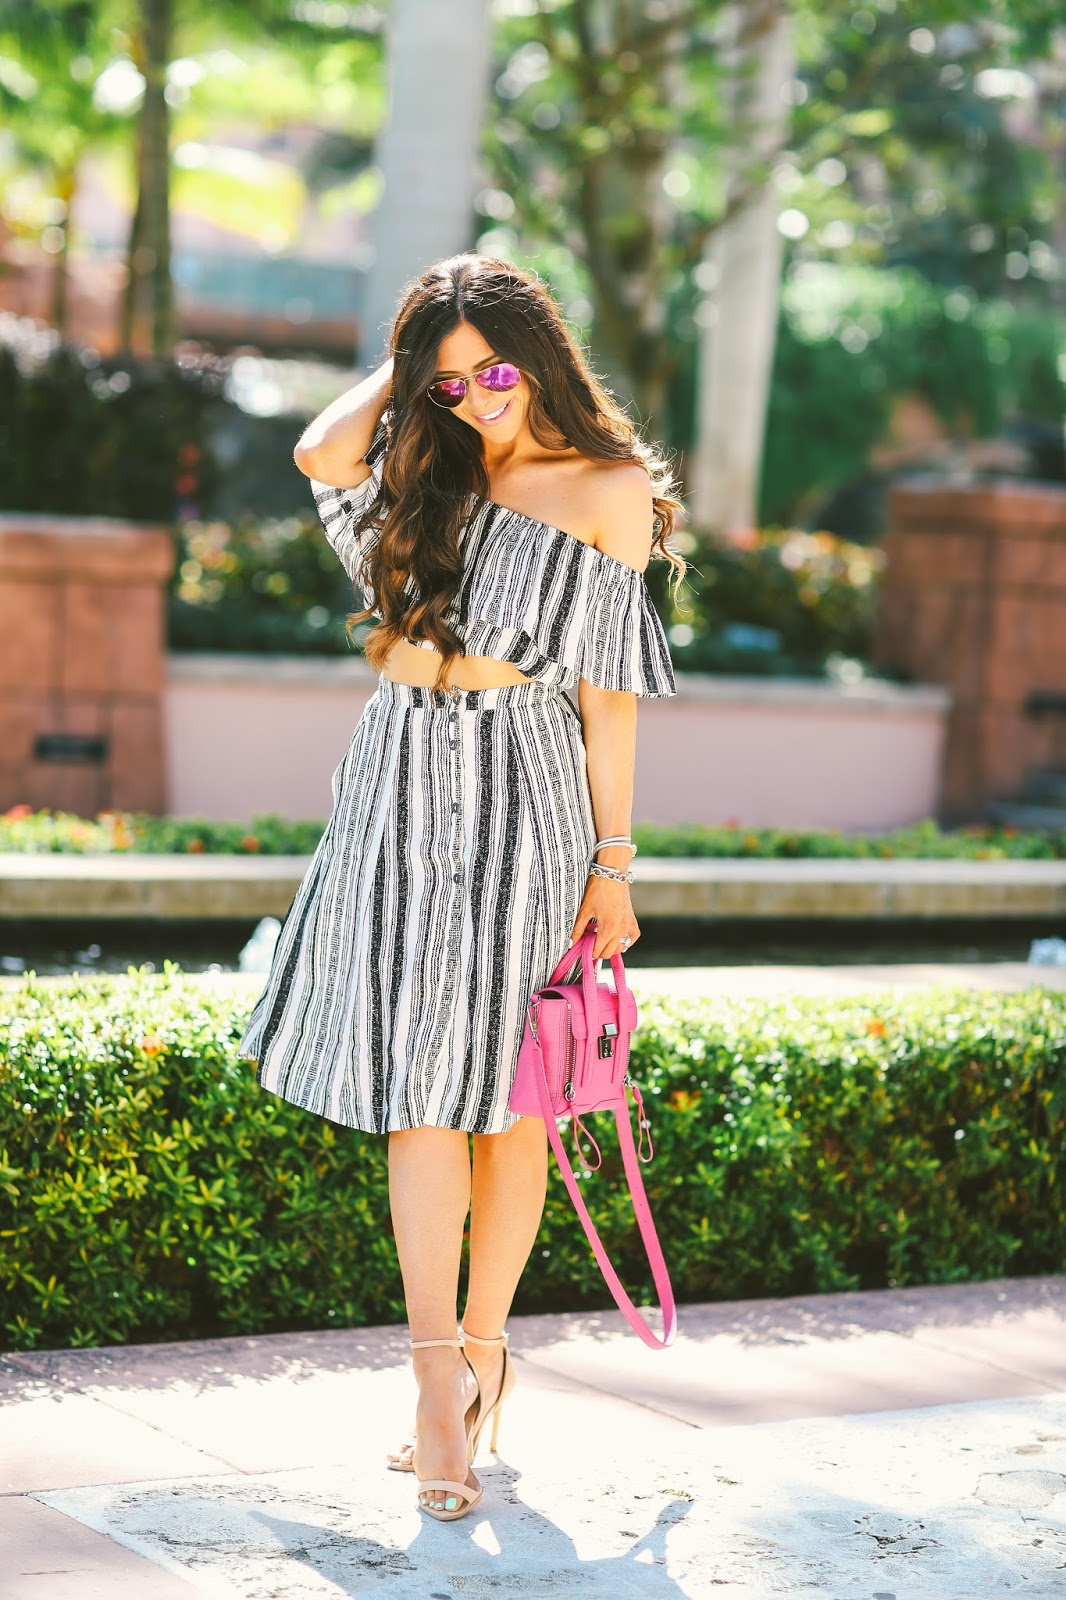 pink ray ban aviators, fuchsia ray ban aviators, ASTR two piece set, striped skirt and crop top outfit, pink phillip lim mini, fushica phillip lim mini, atlantis bahamas, emily gemma blog, the sweetest thing, phillip lim pashli mini, brunette balayage, bellami balayage extensions, henri daussi engagement ring